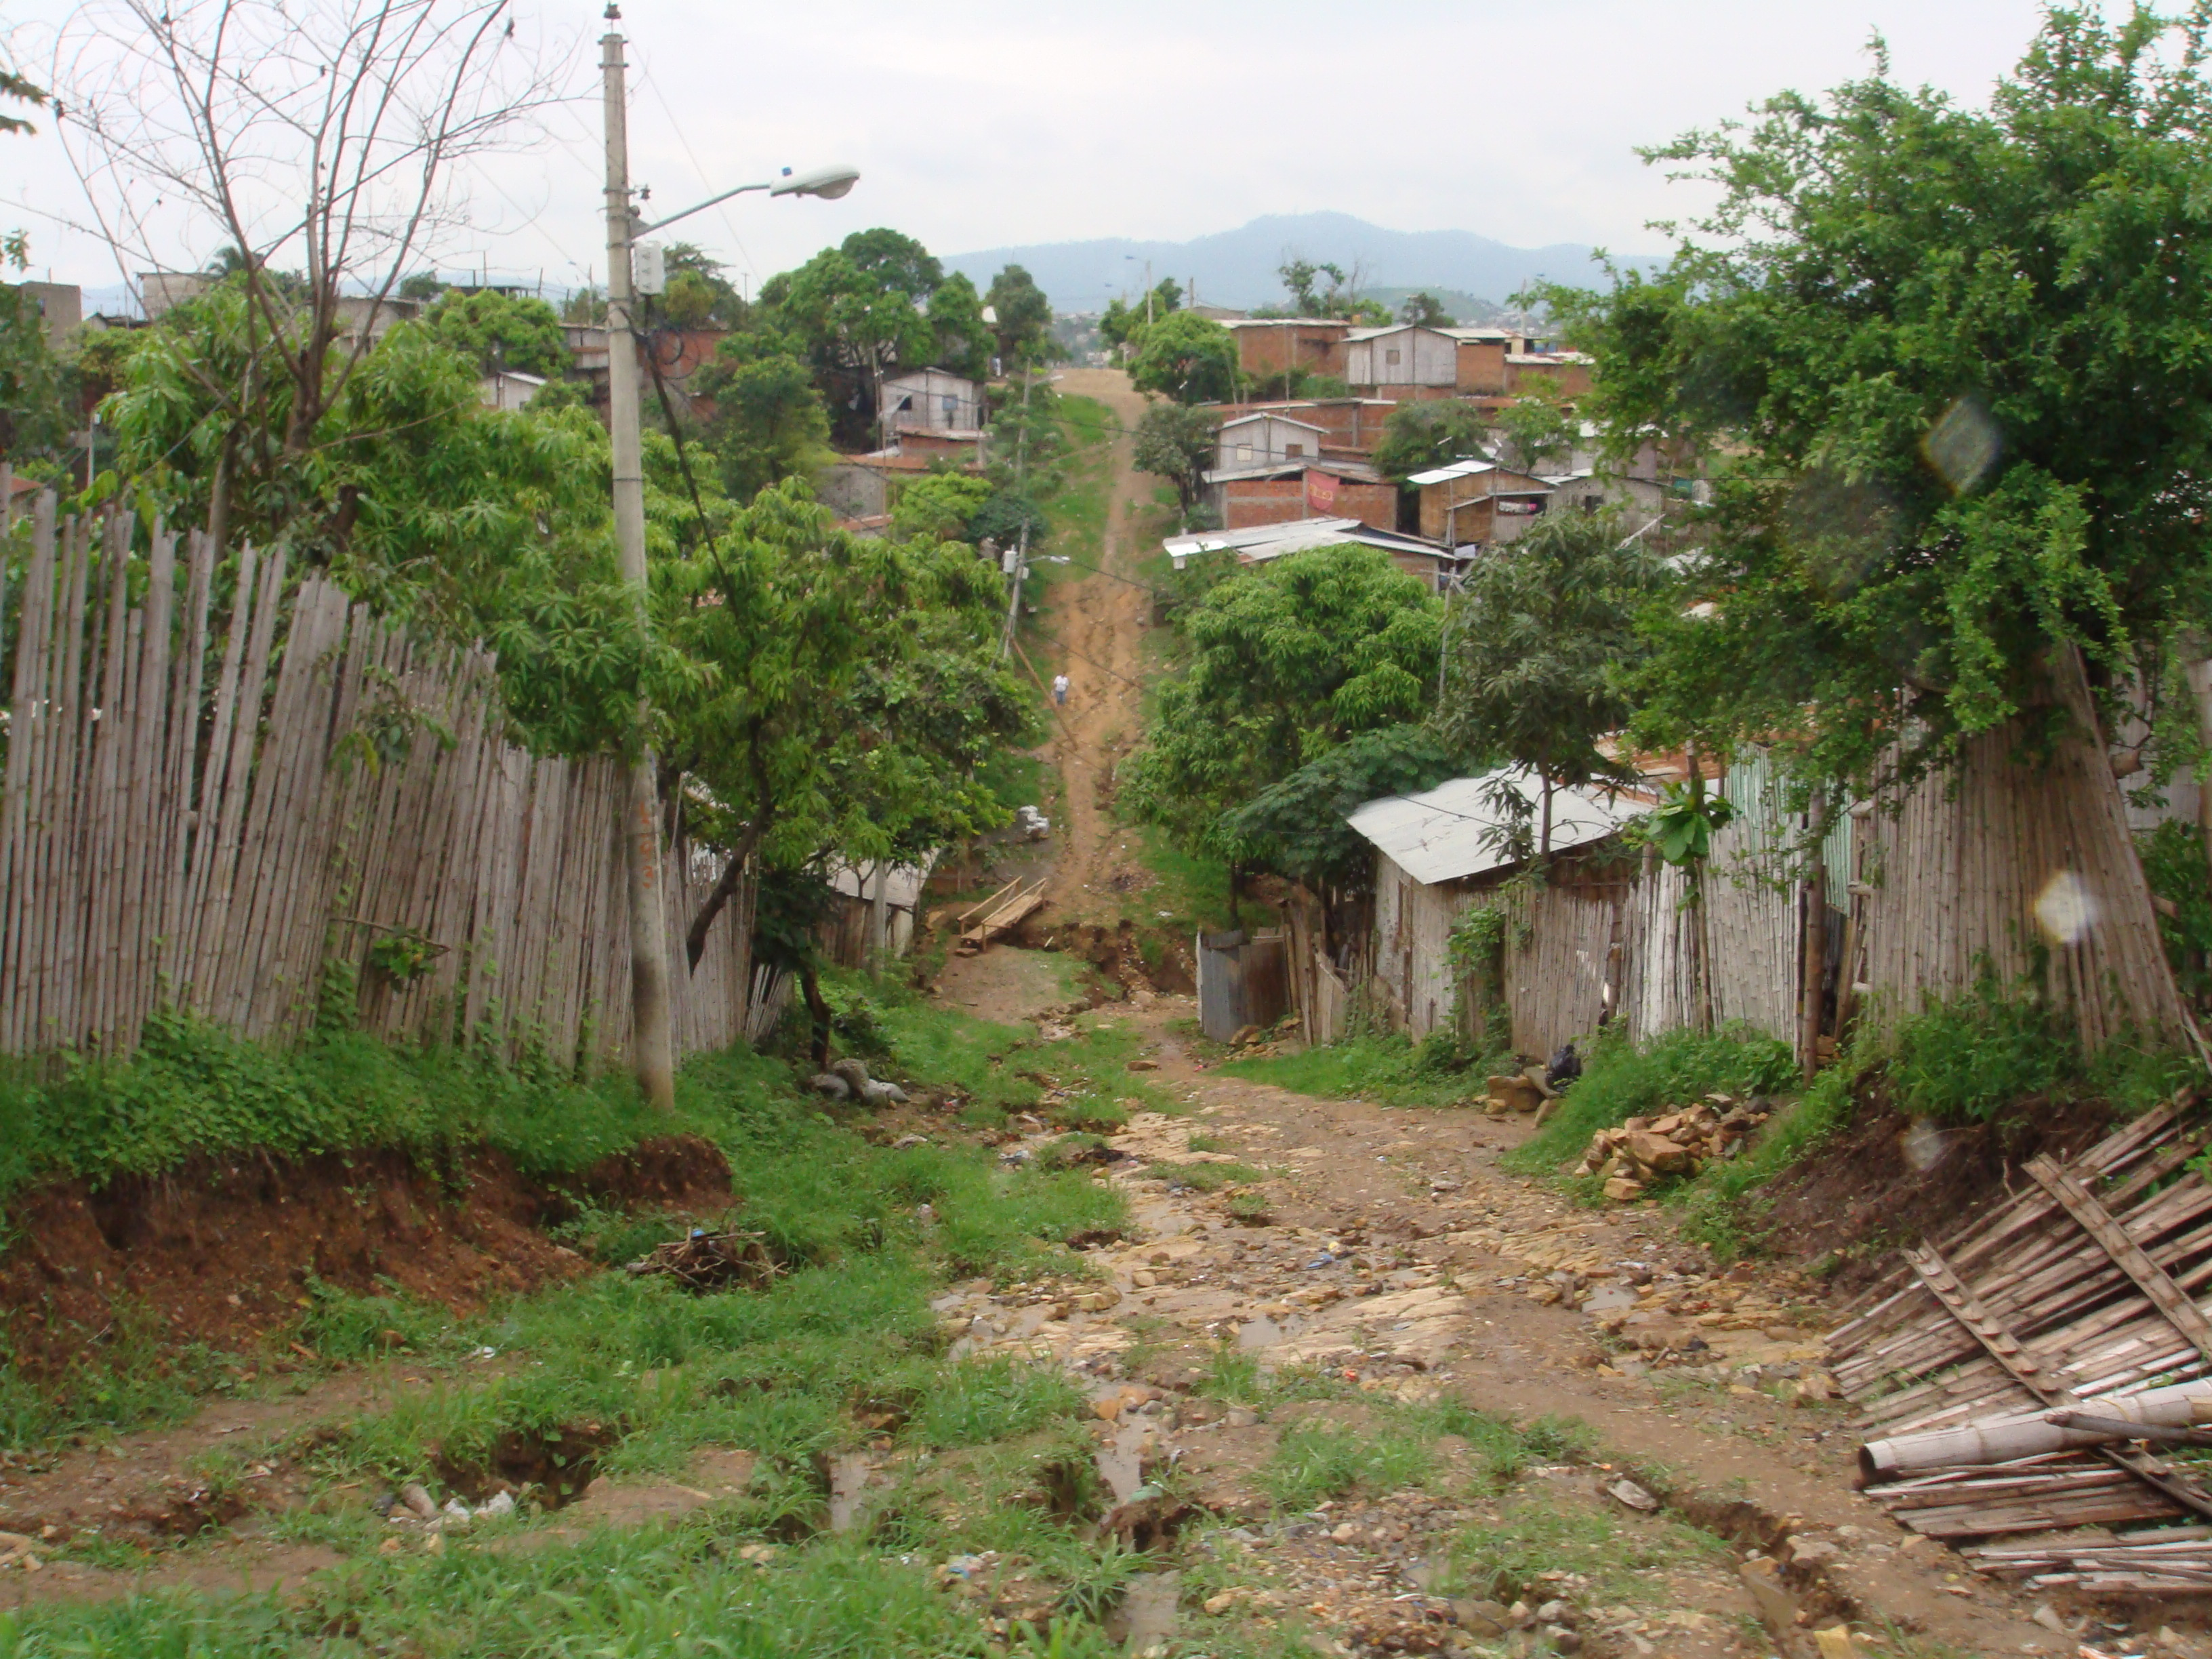 why is there so much poverty Much of latin america has been able to significantly decrease poverty, but mexico continues to struggle here are the ten leading facts about poverty in mexico and its implications.